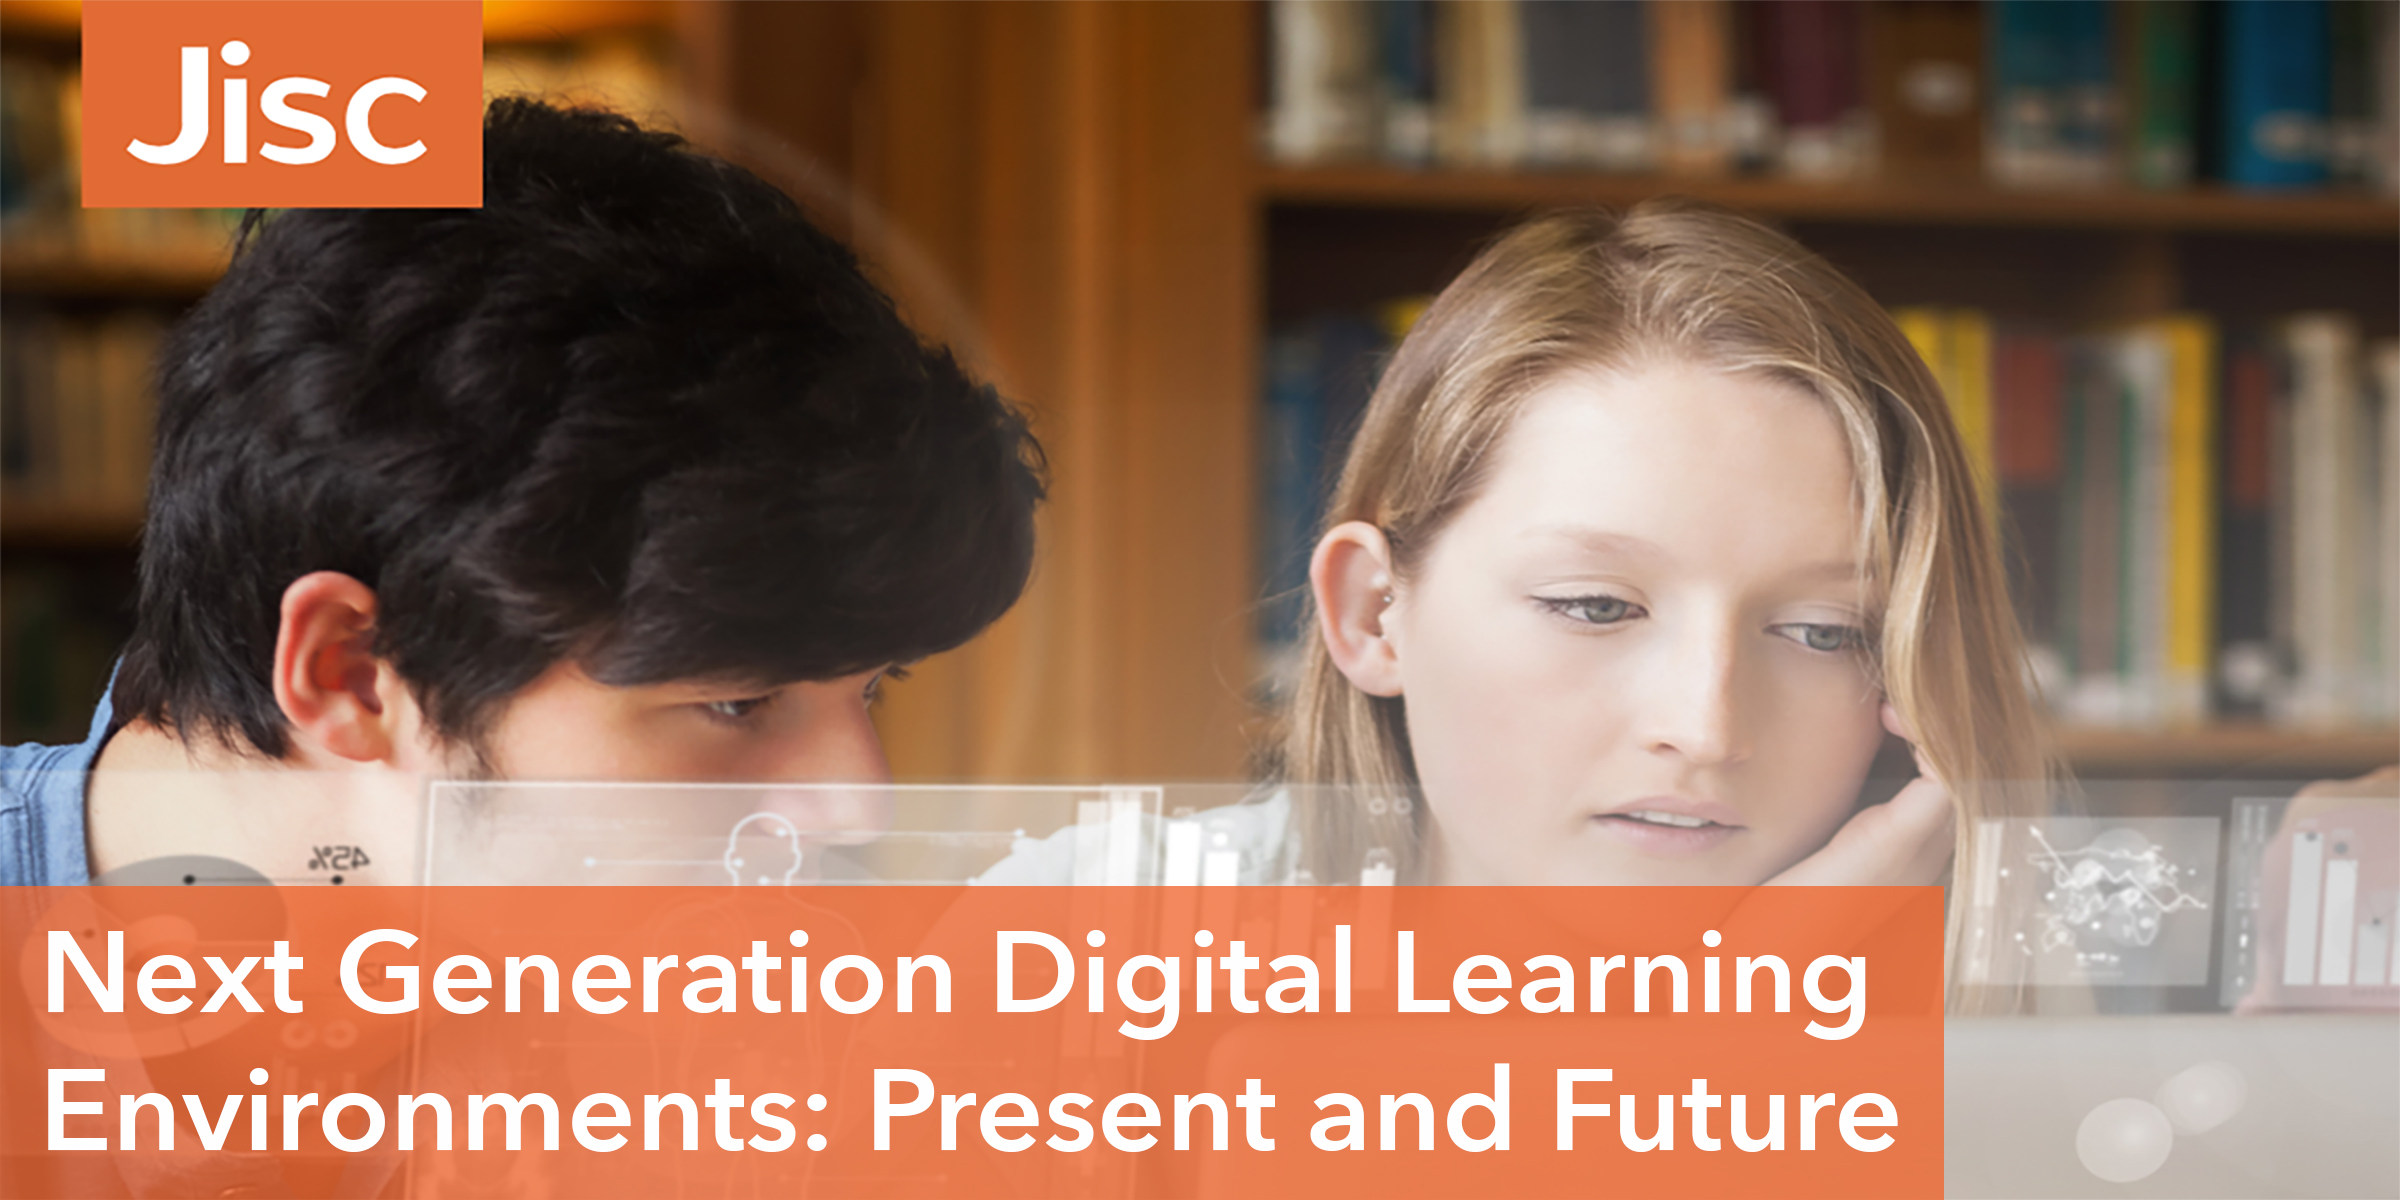 Next Generation Digital Learning Environments Report